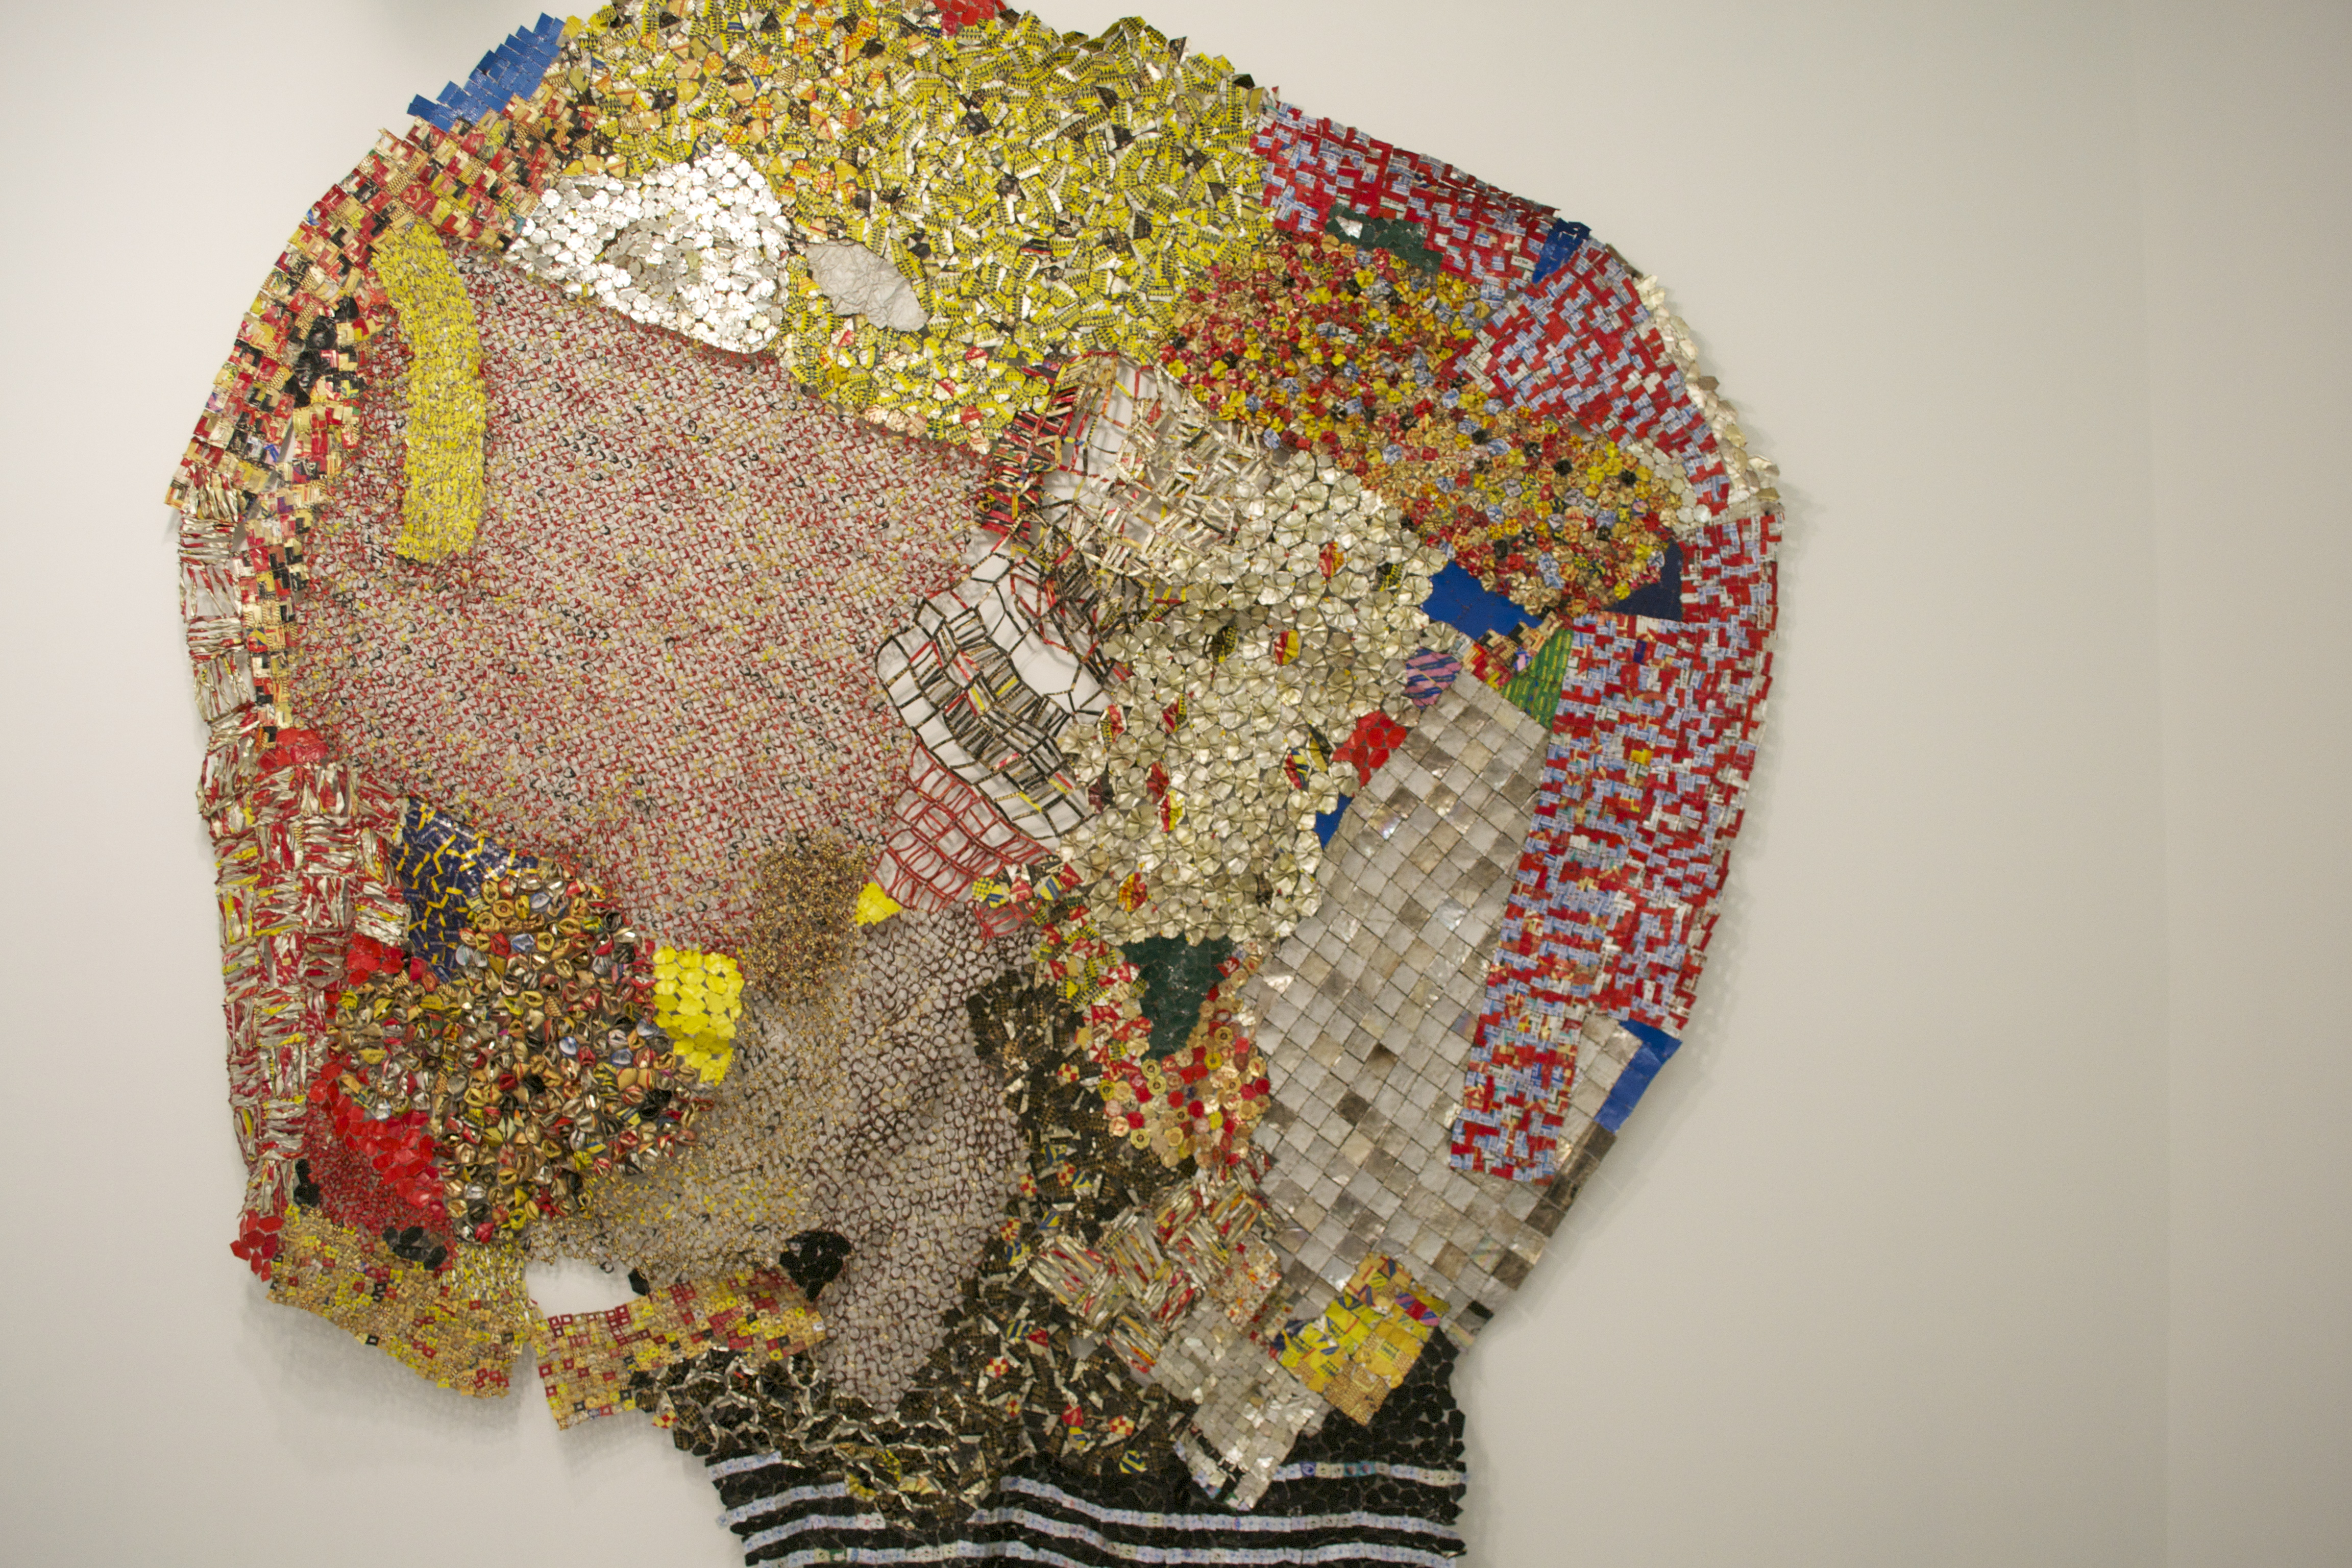 Nigerian artist el anatsuis spectacular and thought provoking works are currently on show at jack shainman gallery in chelsea at first glance the large